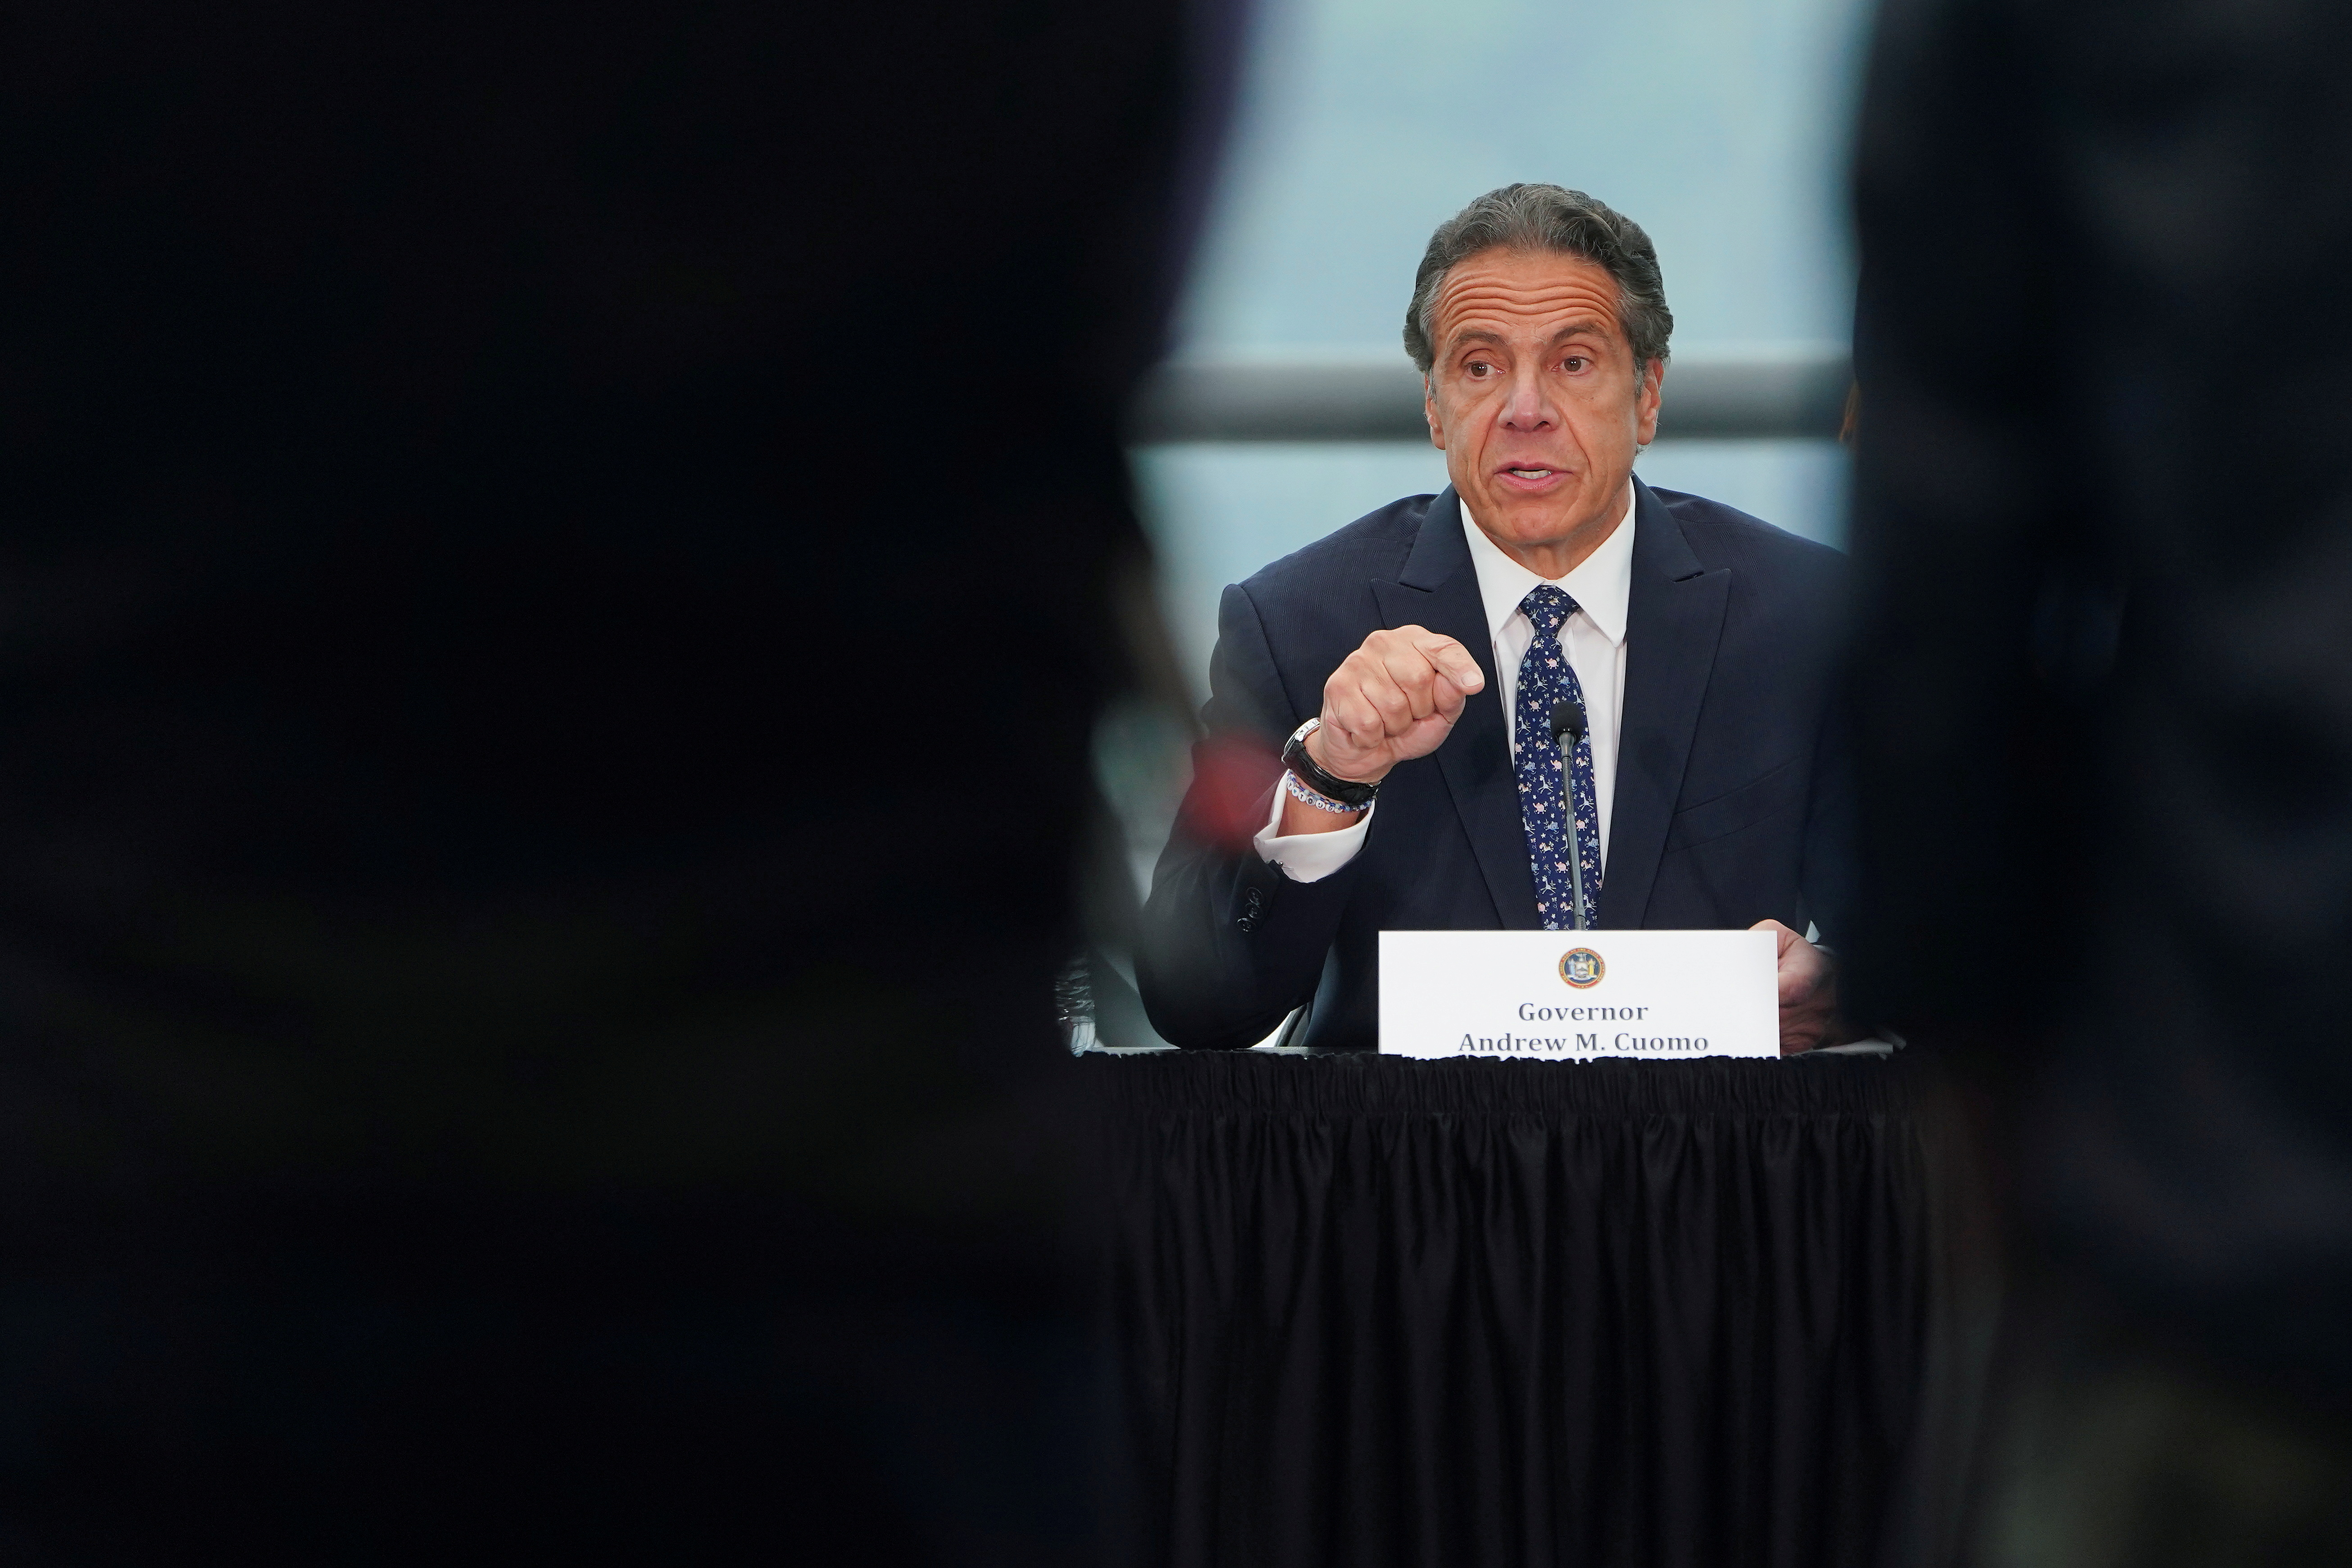 New York Governor Andrew Cuomo gives a press conference in the Manhattan borough of New York City, New York, U.S., June 2, 2021.  REUTERS/Carlo Allegri/File Photo